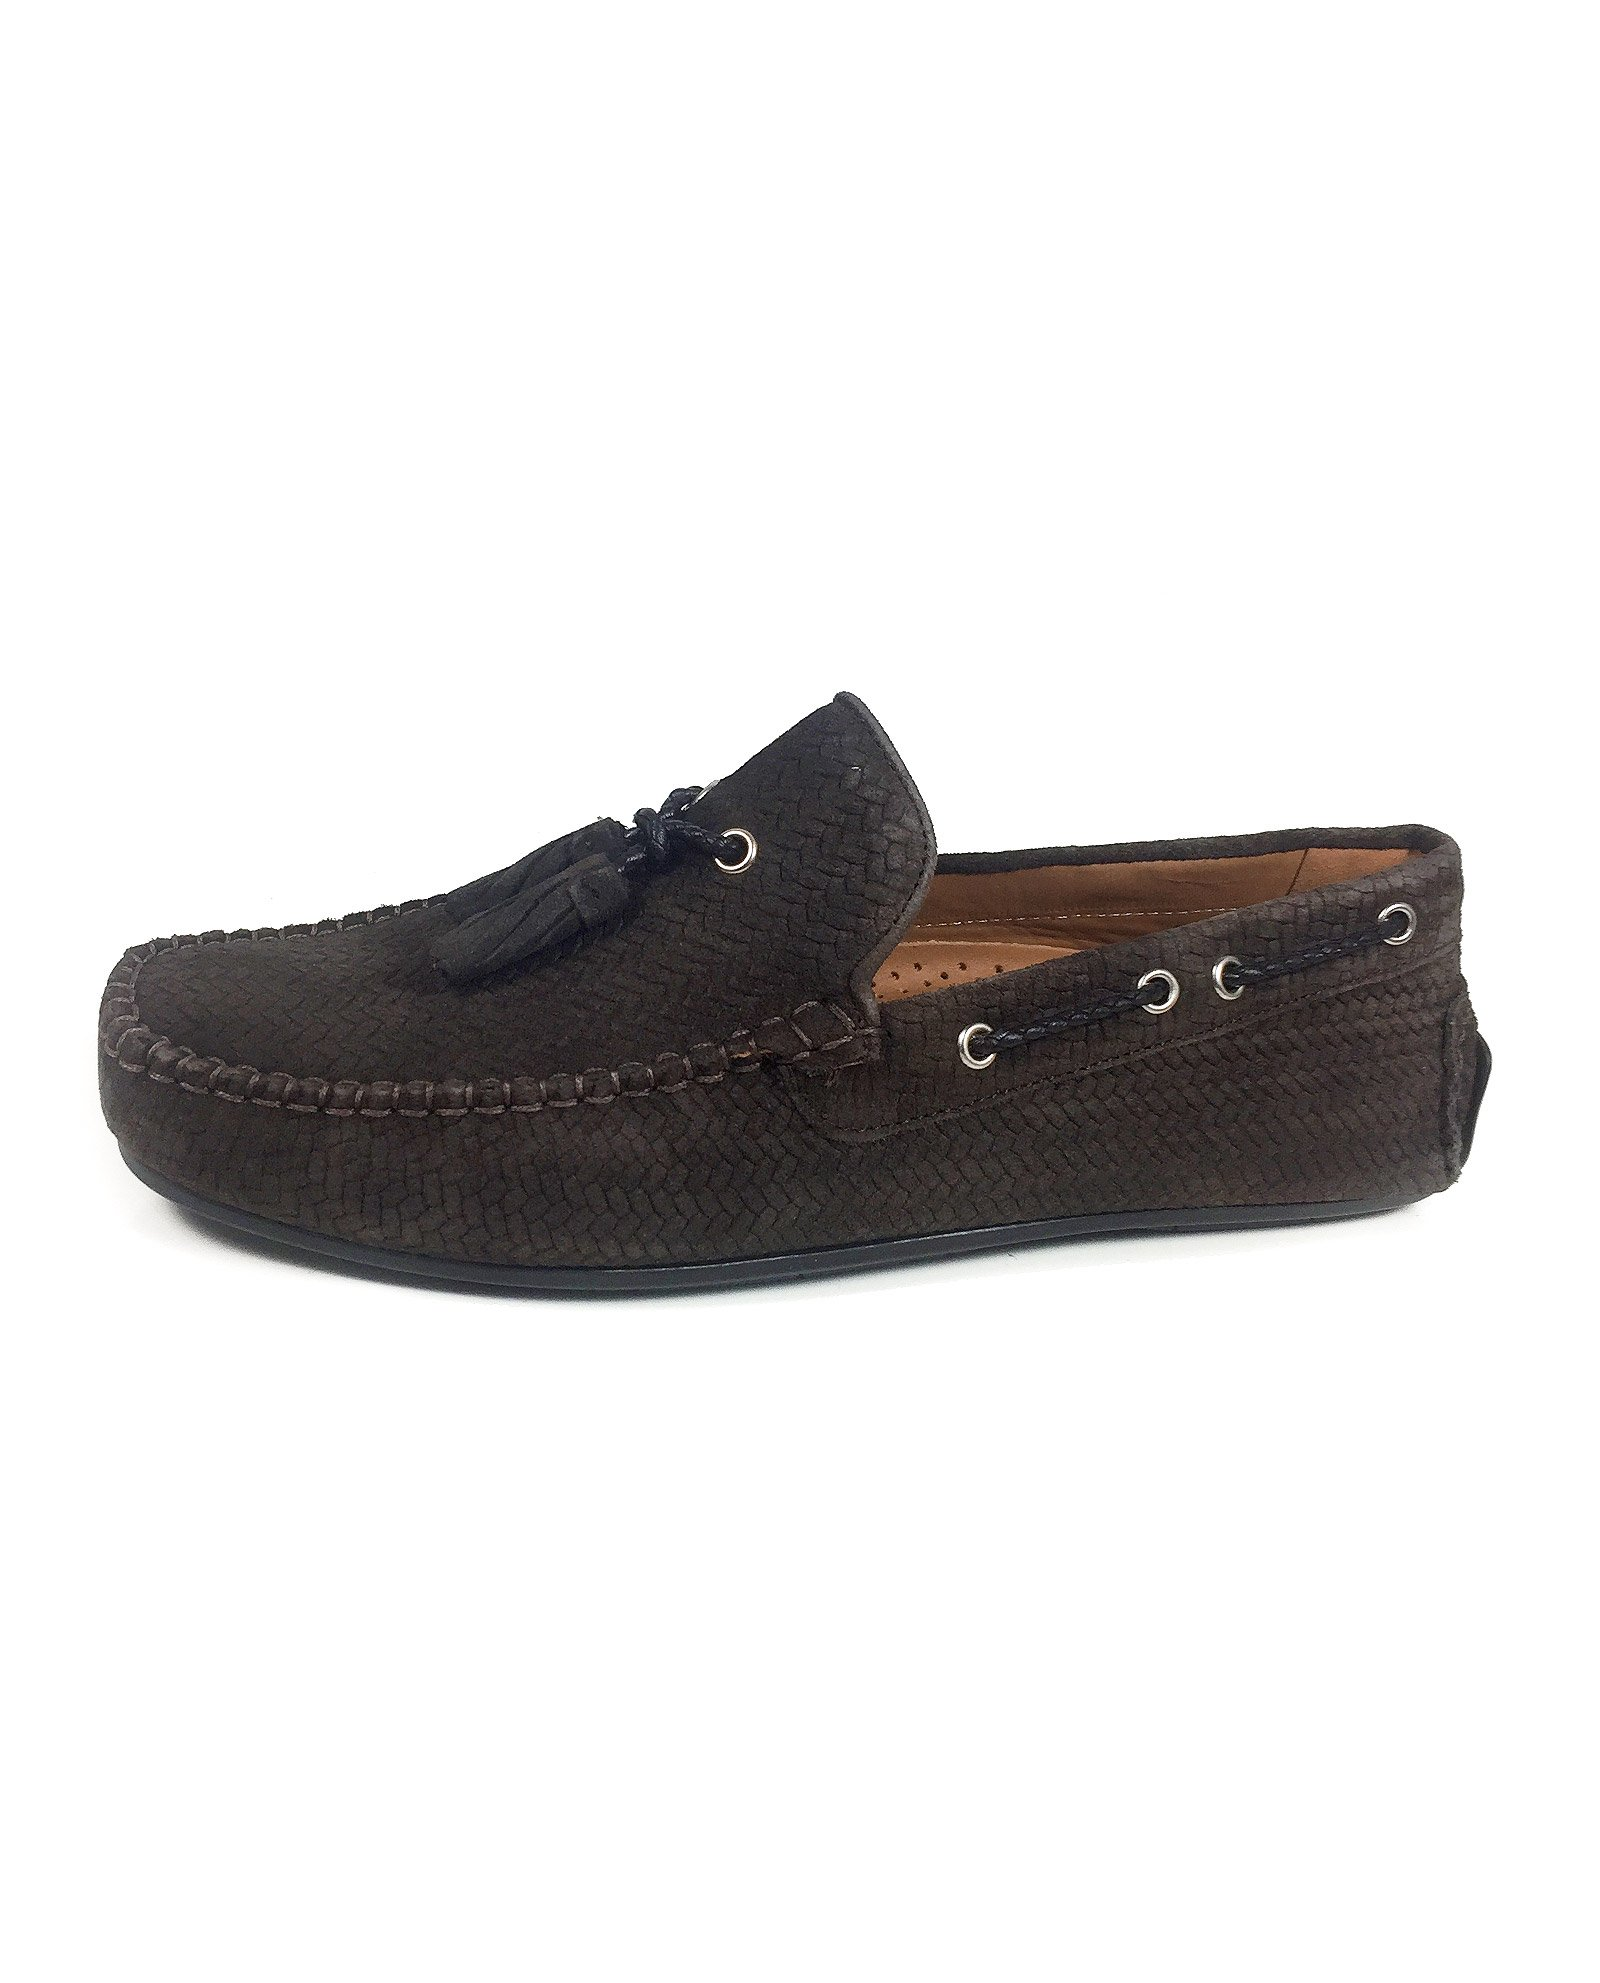 Zara Men Brown leather loafers 2601/302 (44 EU | 11 US | 10 UK)